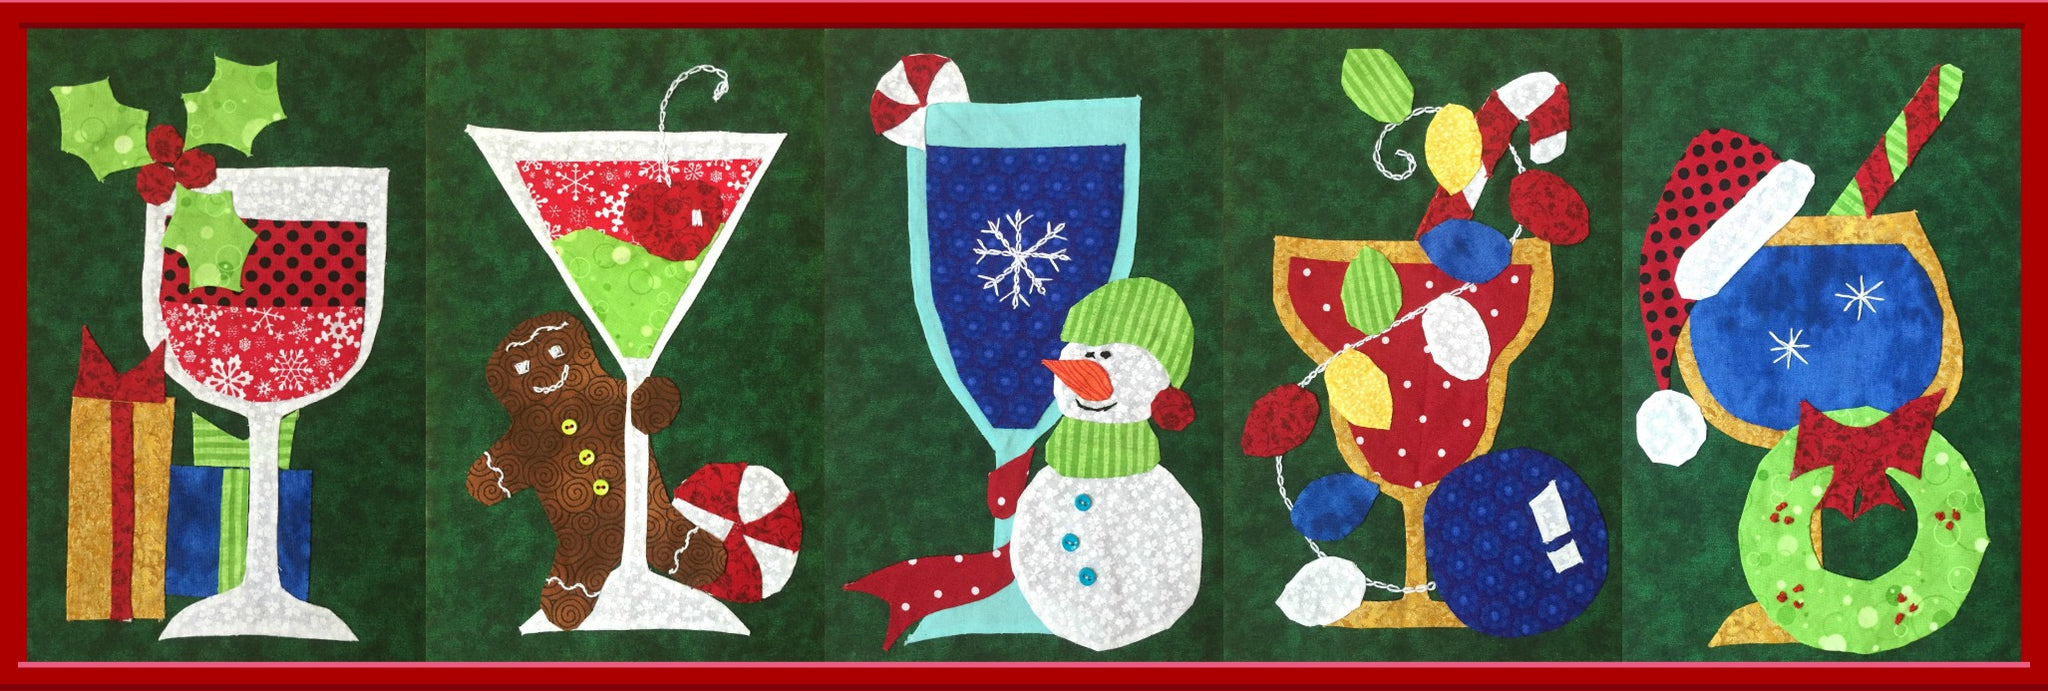 Christmas Runner Patterns.Holiday Table Runner Combo Pack 2 Fun Patterns Suzys